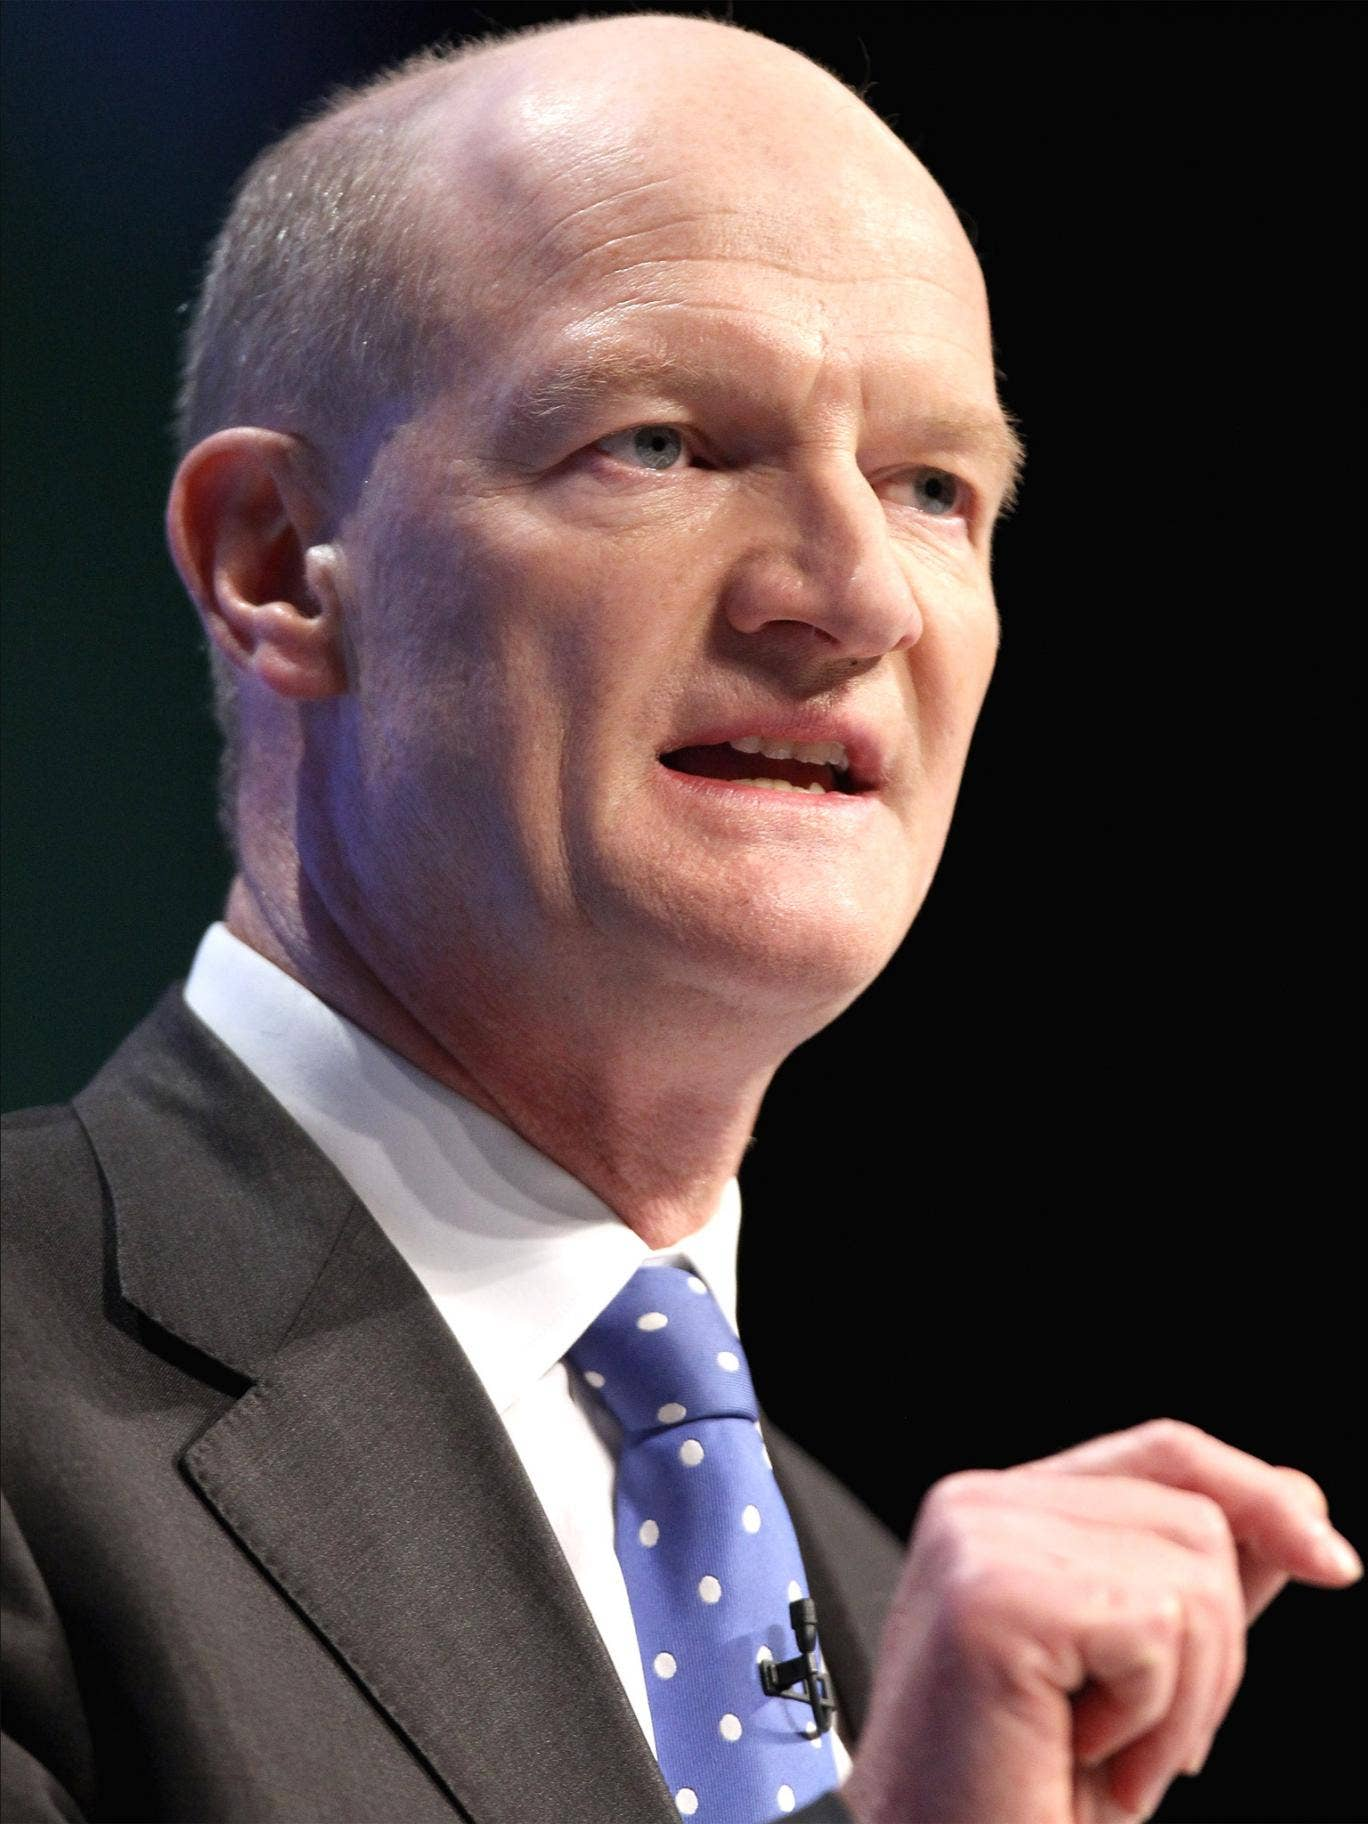 The Universities minister, David Willetts, says there will be an increase in funding for universities